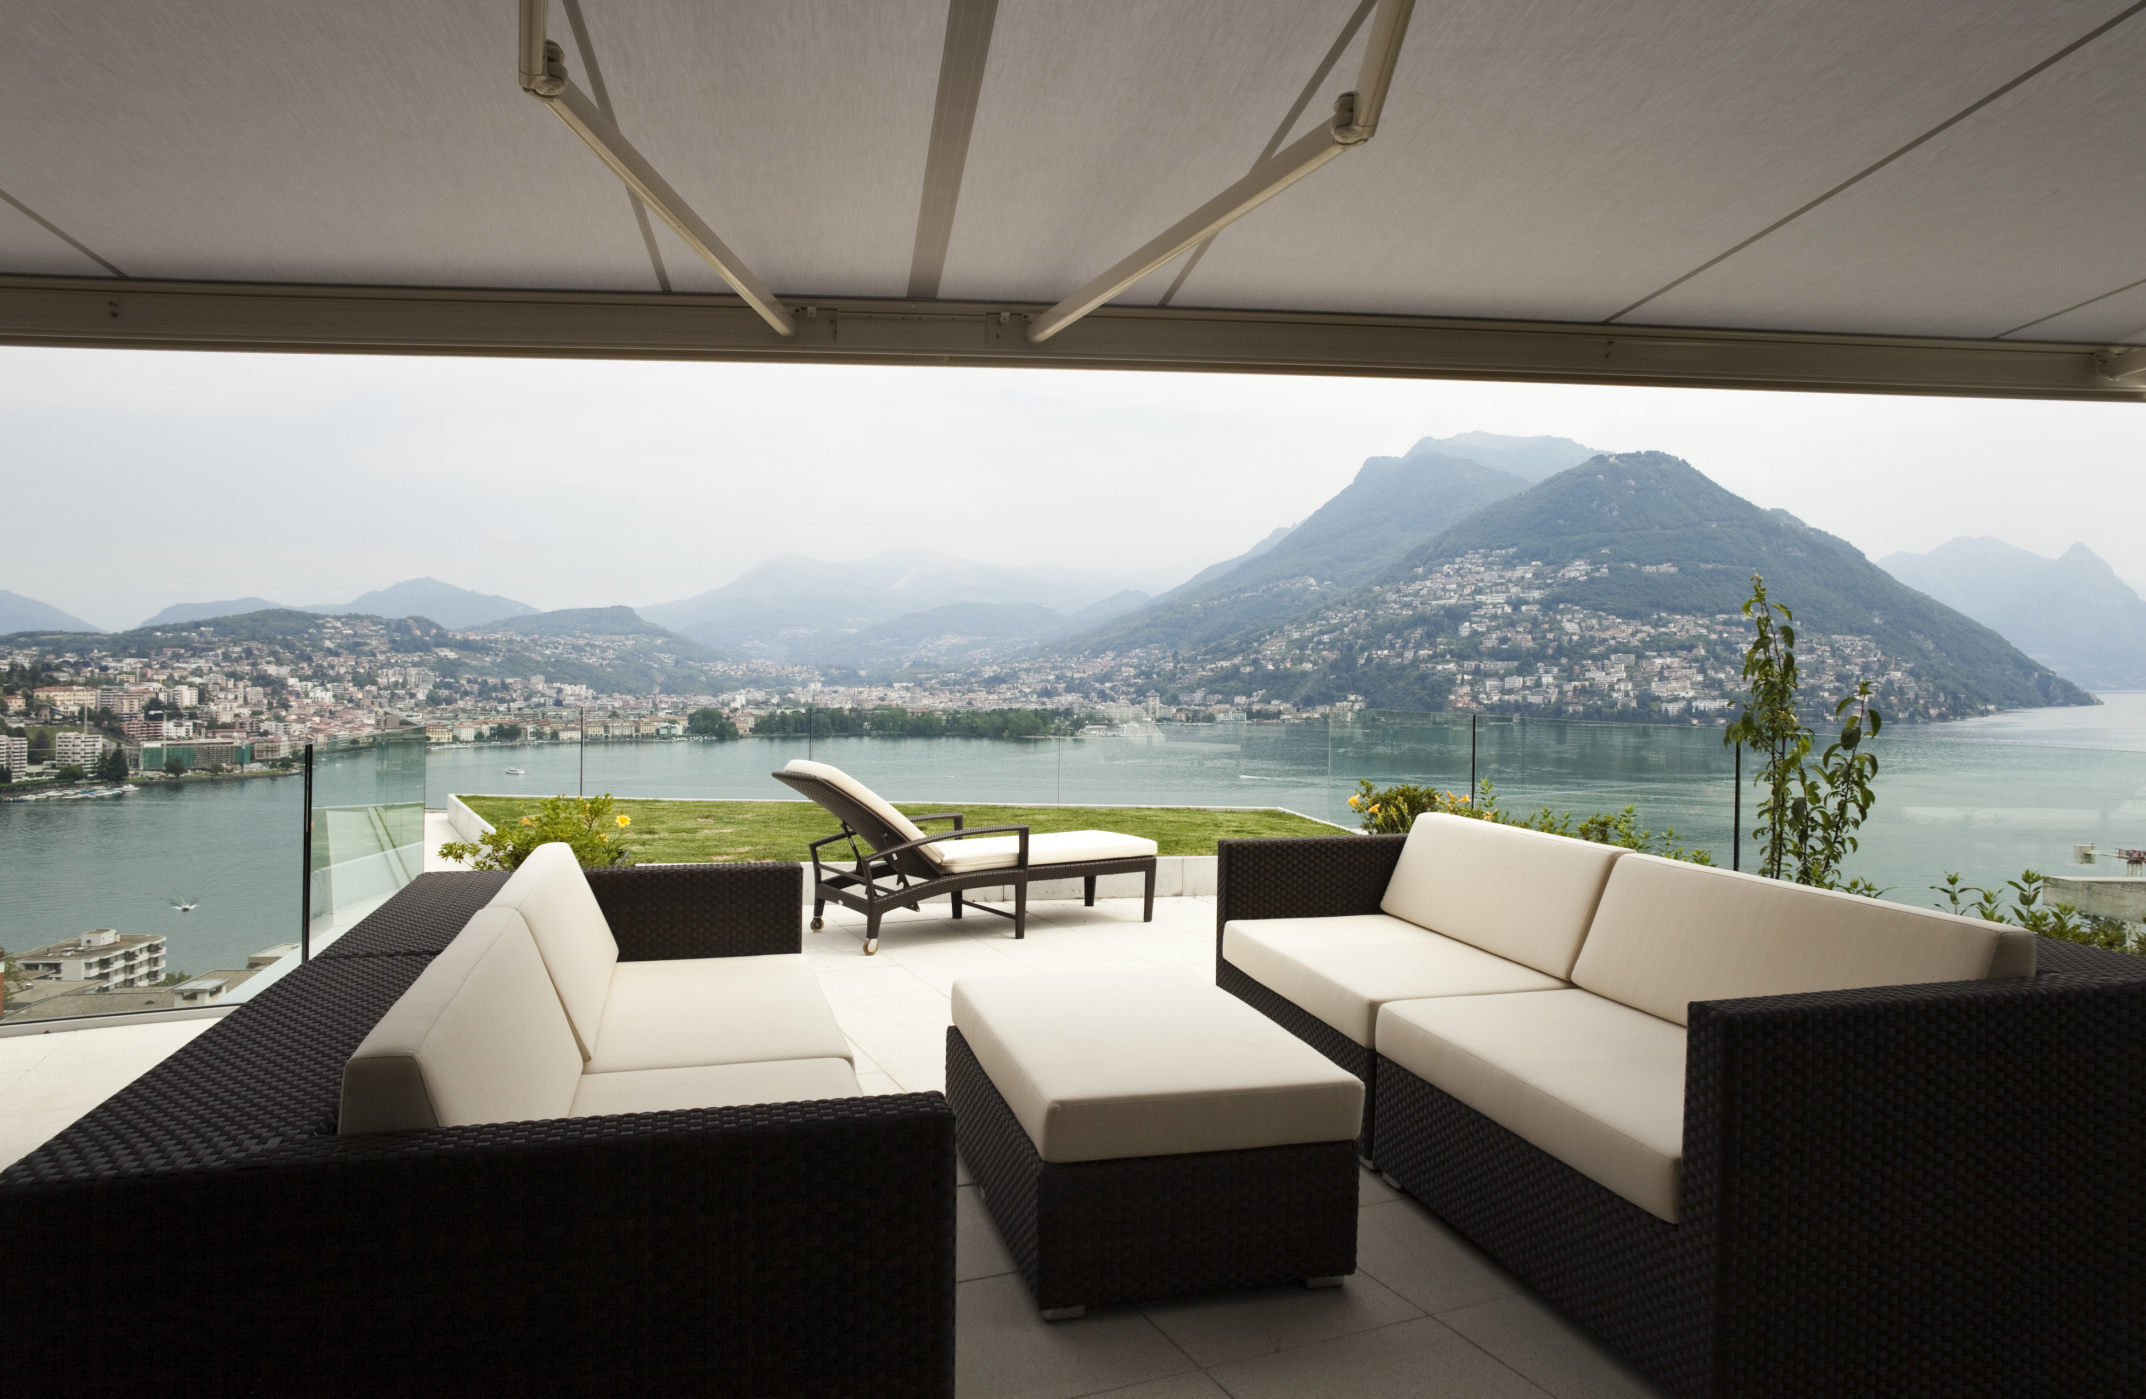 awning retractable over beautiful patio.jpg